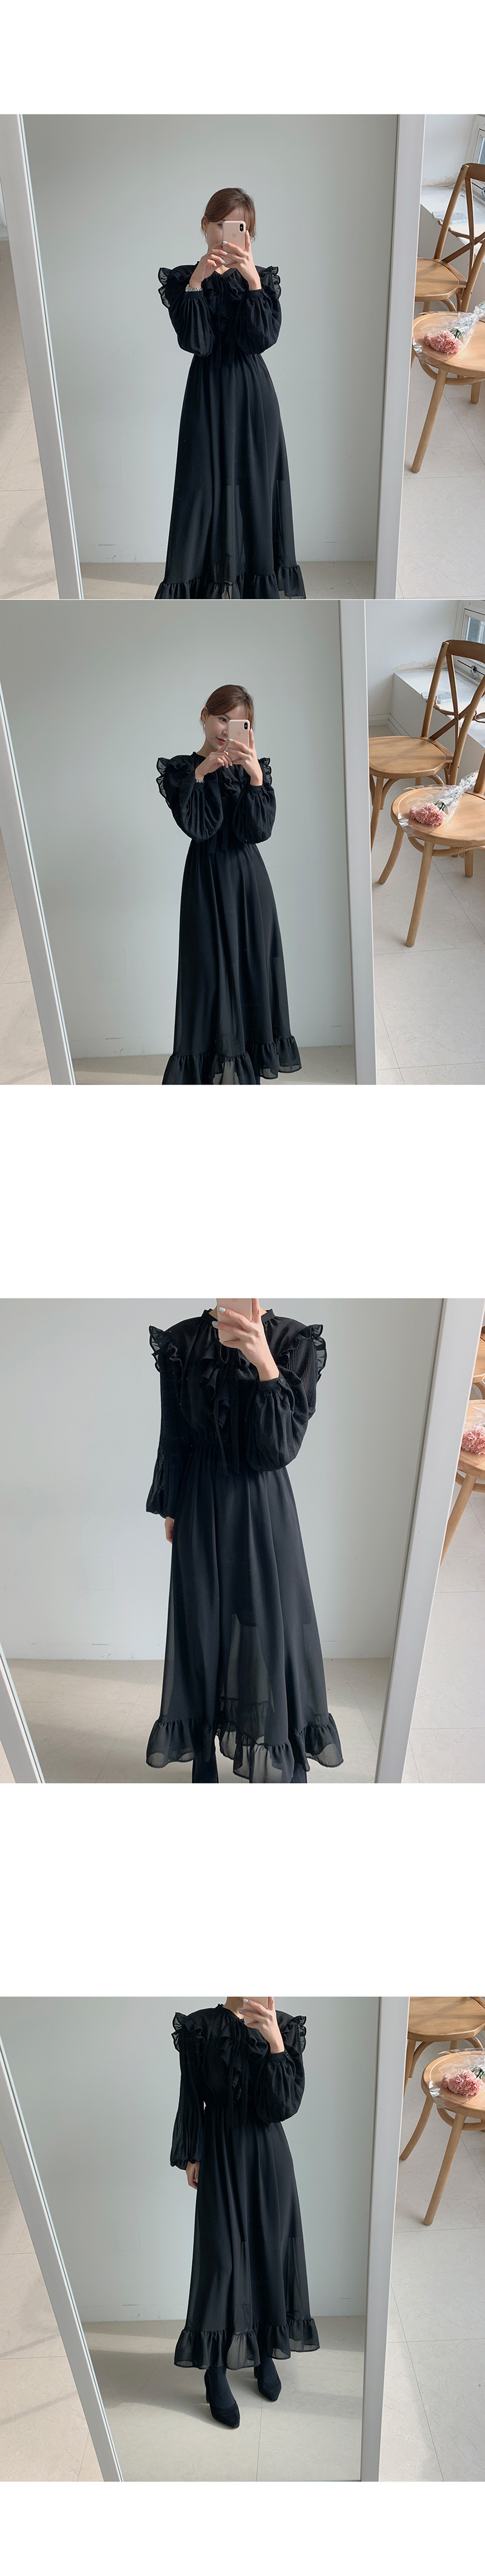 Hf199b9a72b664cfeab2b9656fa9c74969 - Autumn O-Neck Long Sleeves Chiffon Ruffles Maxi Dress